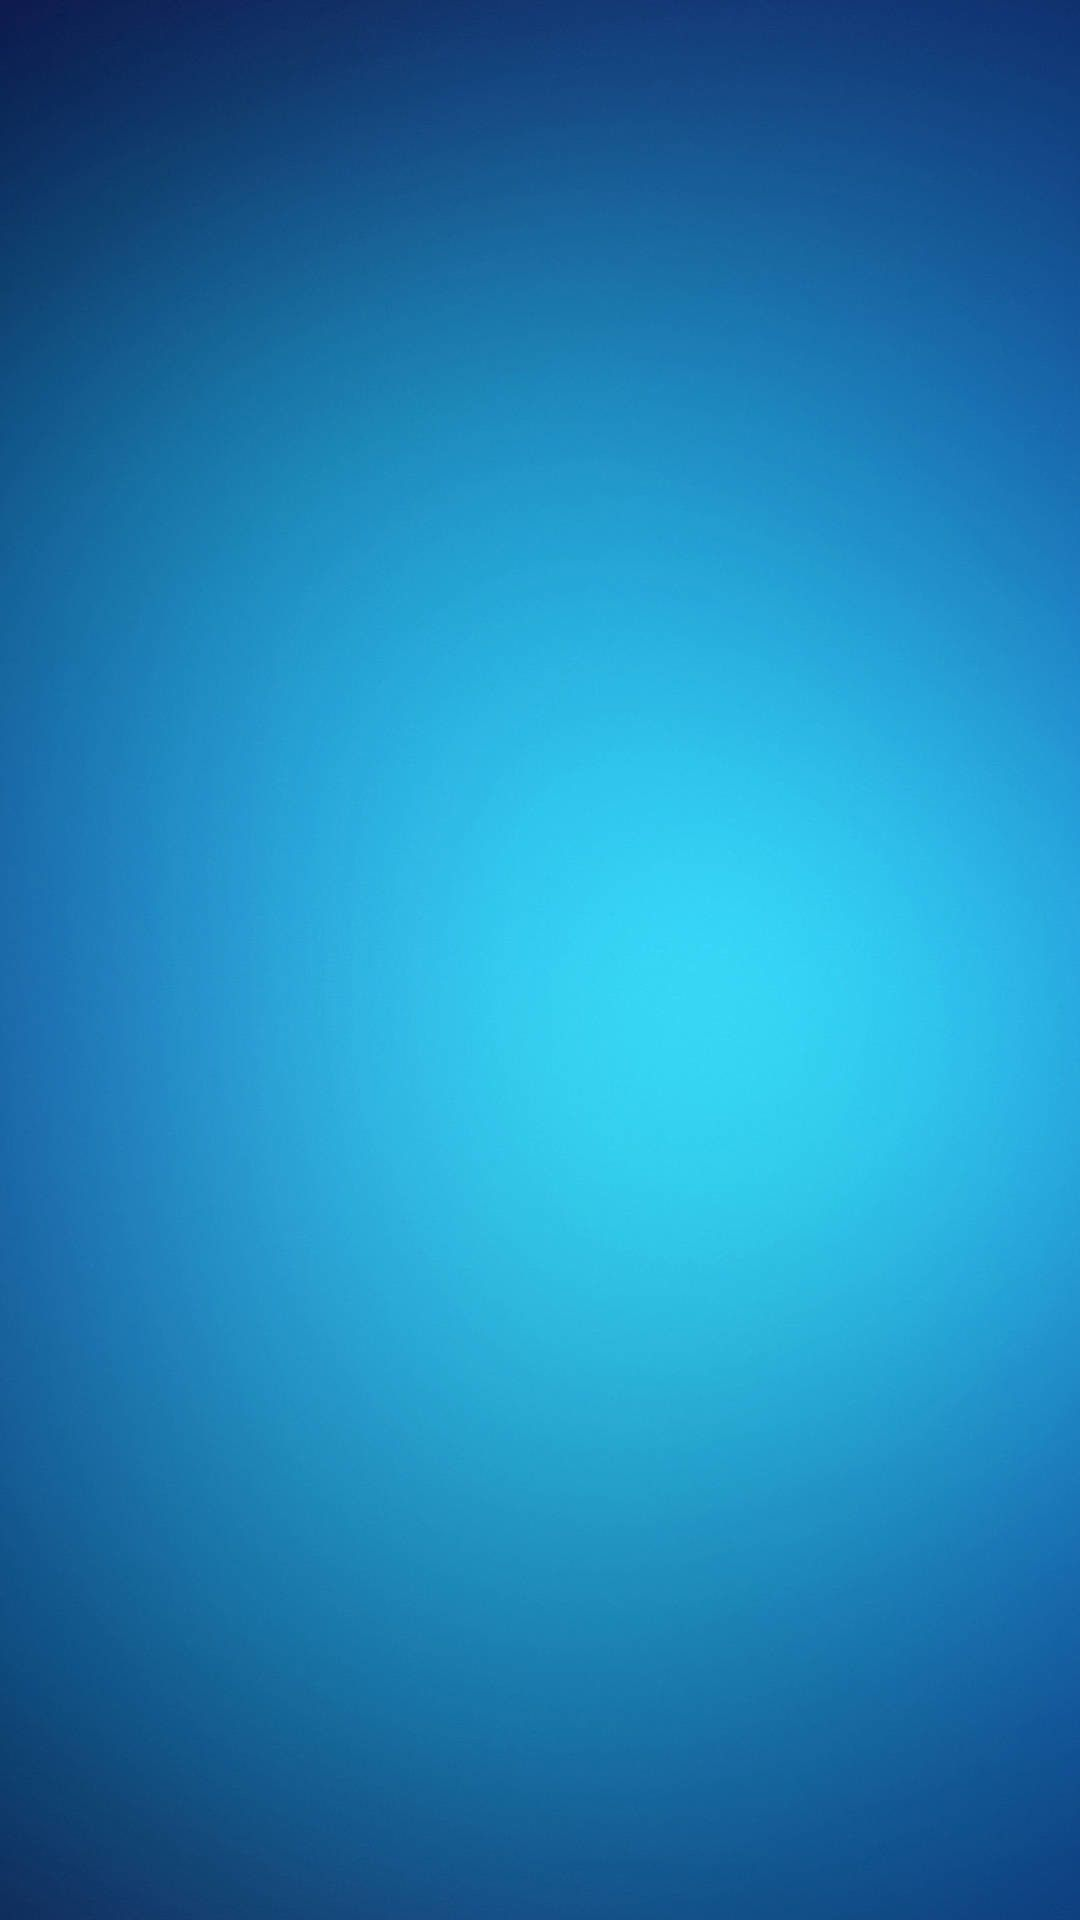 1080x1920 Blue Galaxy S4 Wallpaper 5127 In 2019 Blue